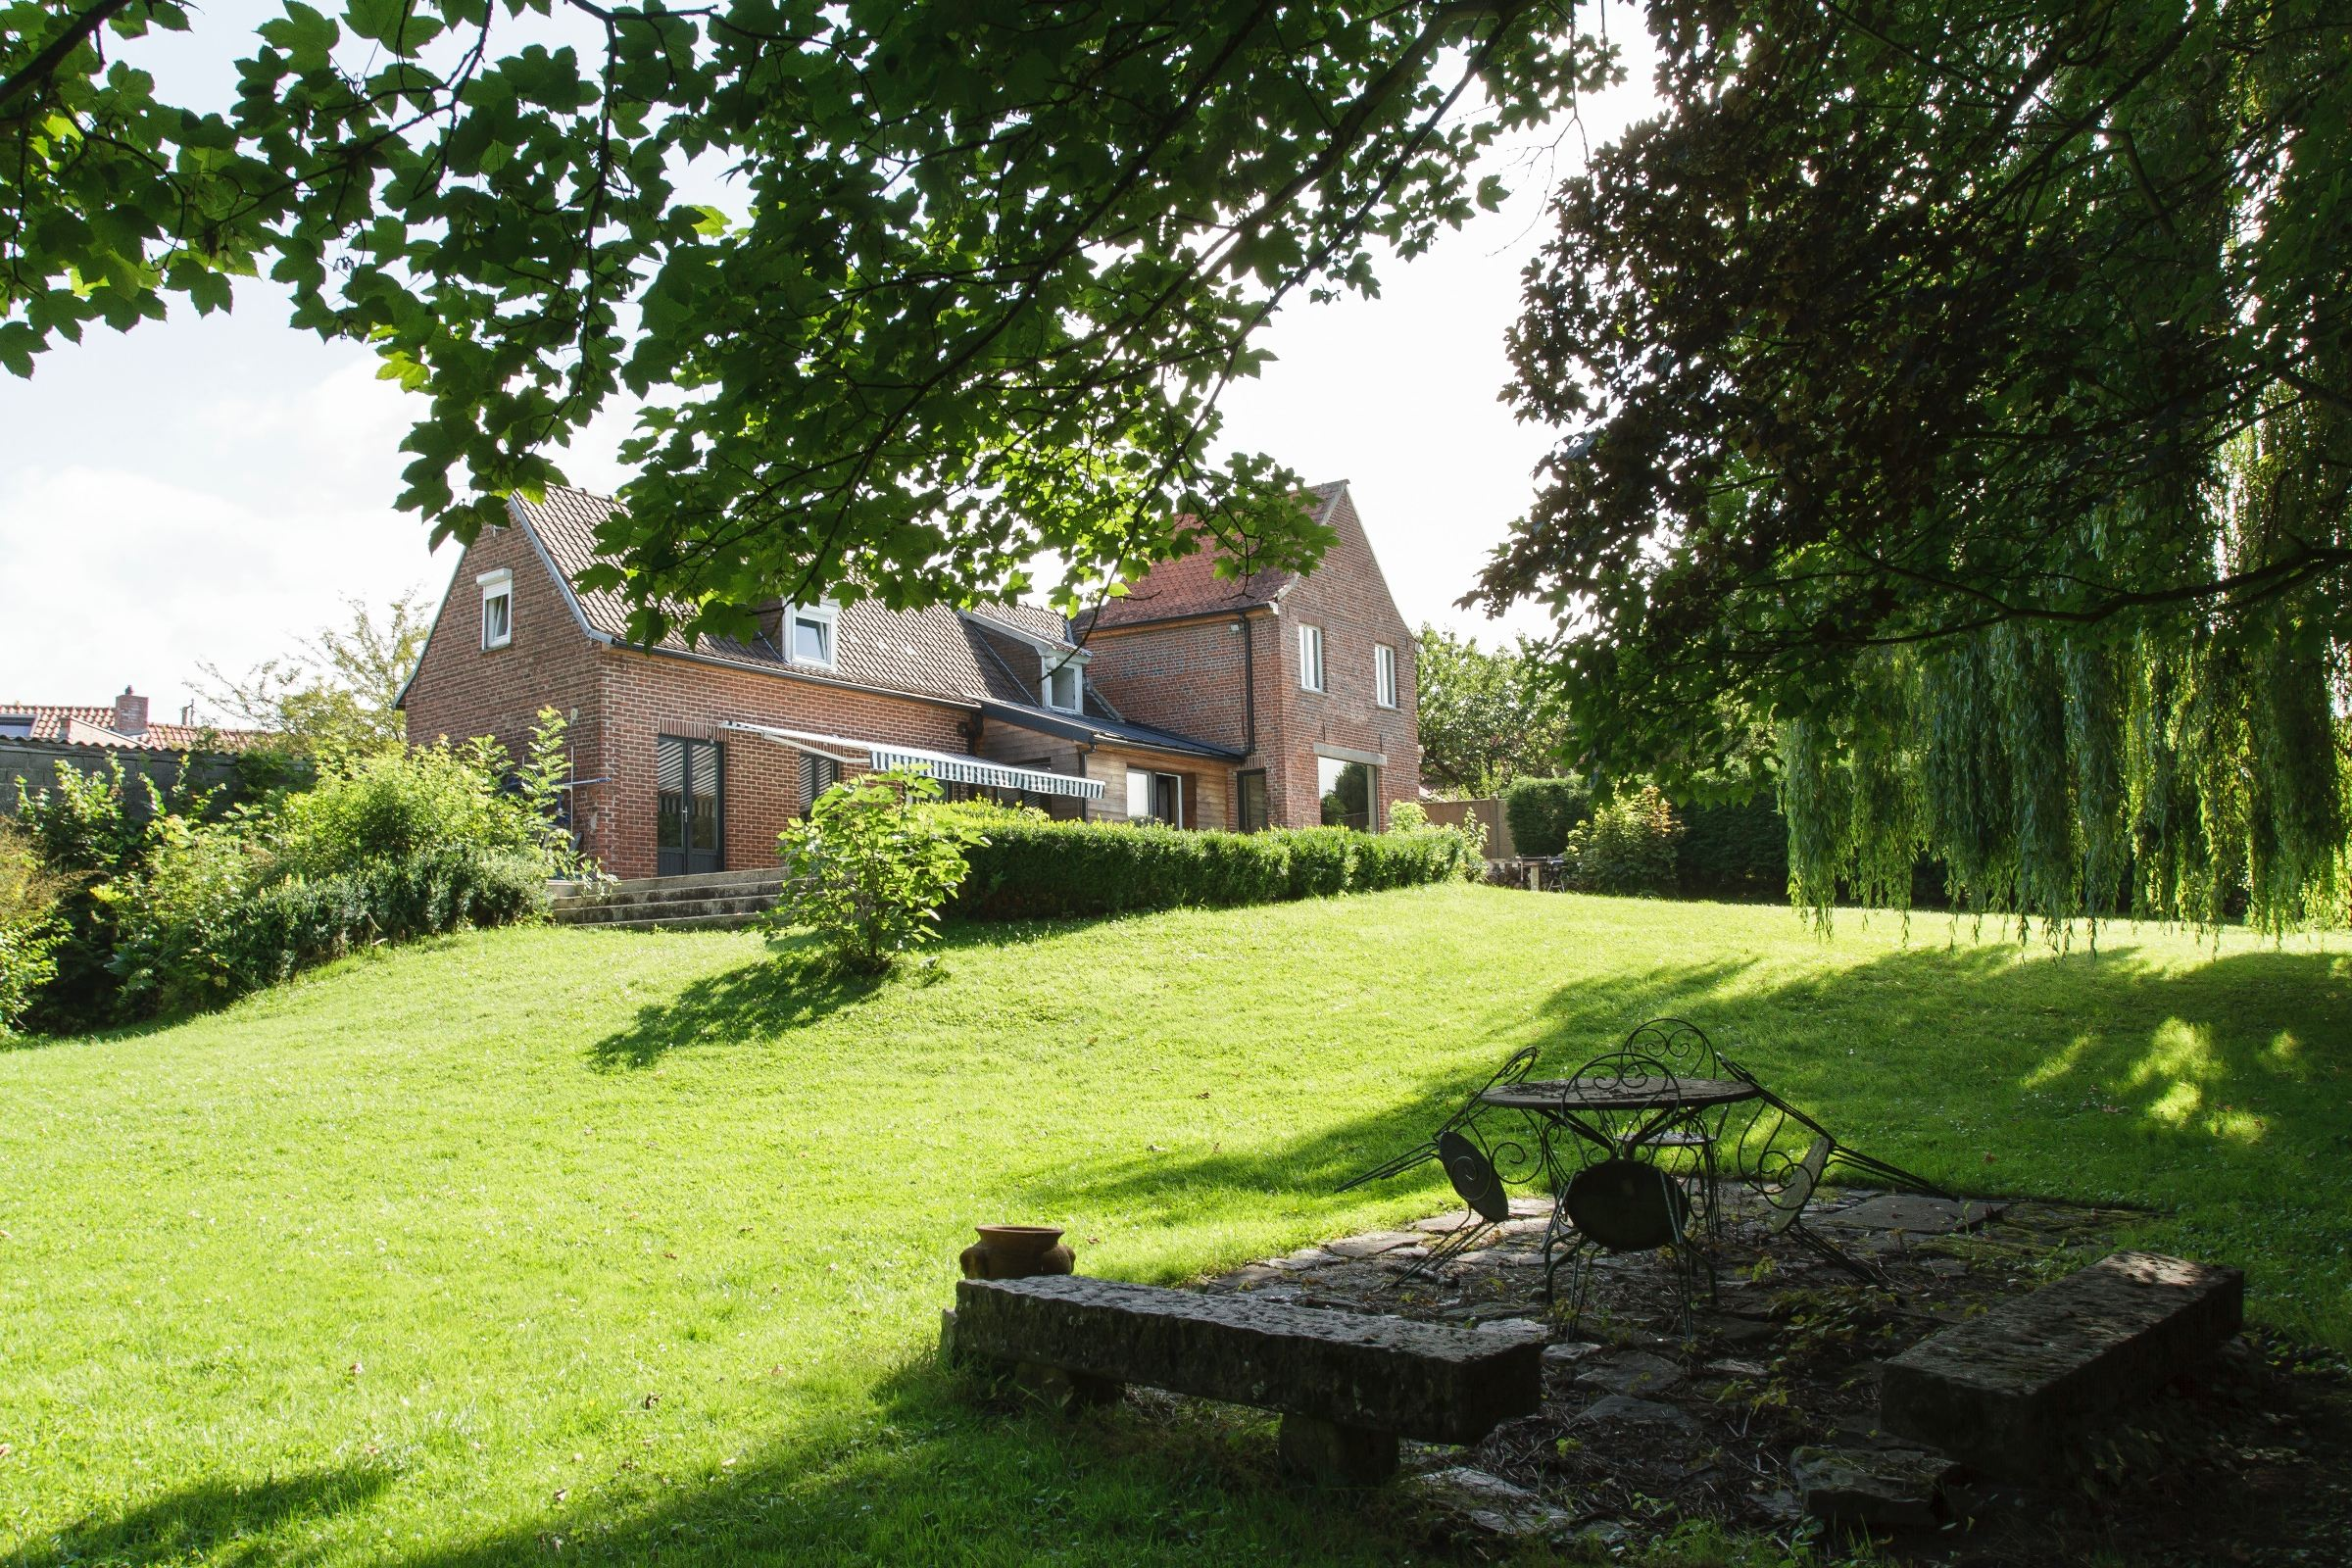 Property For Sale at CYSOING, charming farmhouse 241 m2 hab 5 bedrooms